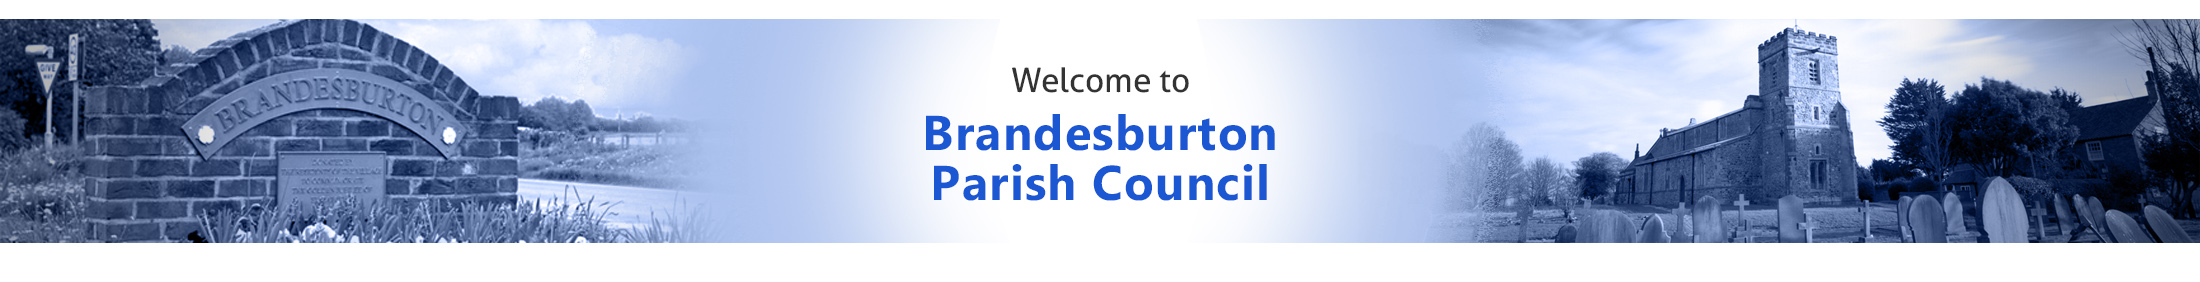 Header Image for Brandesburton Parish Council